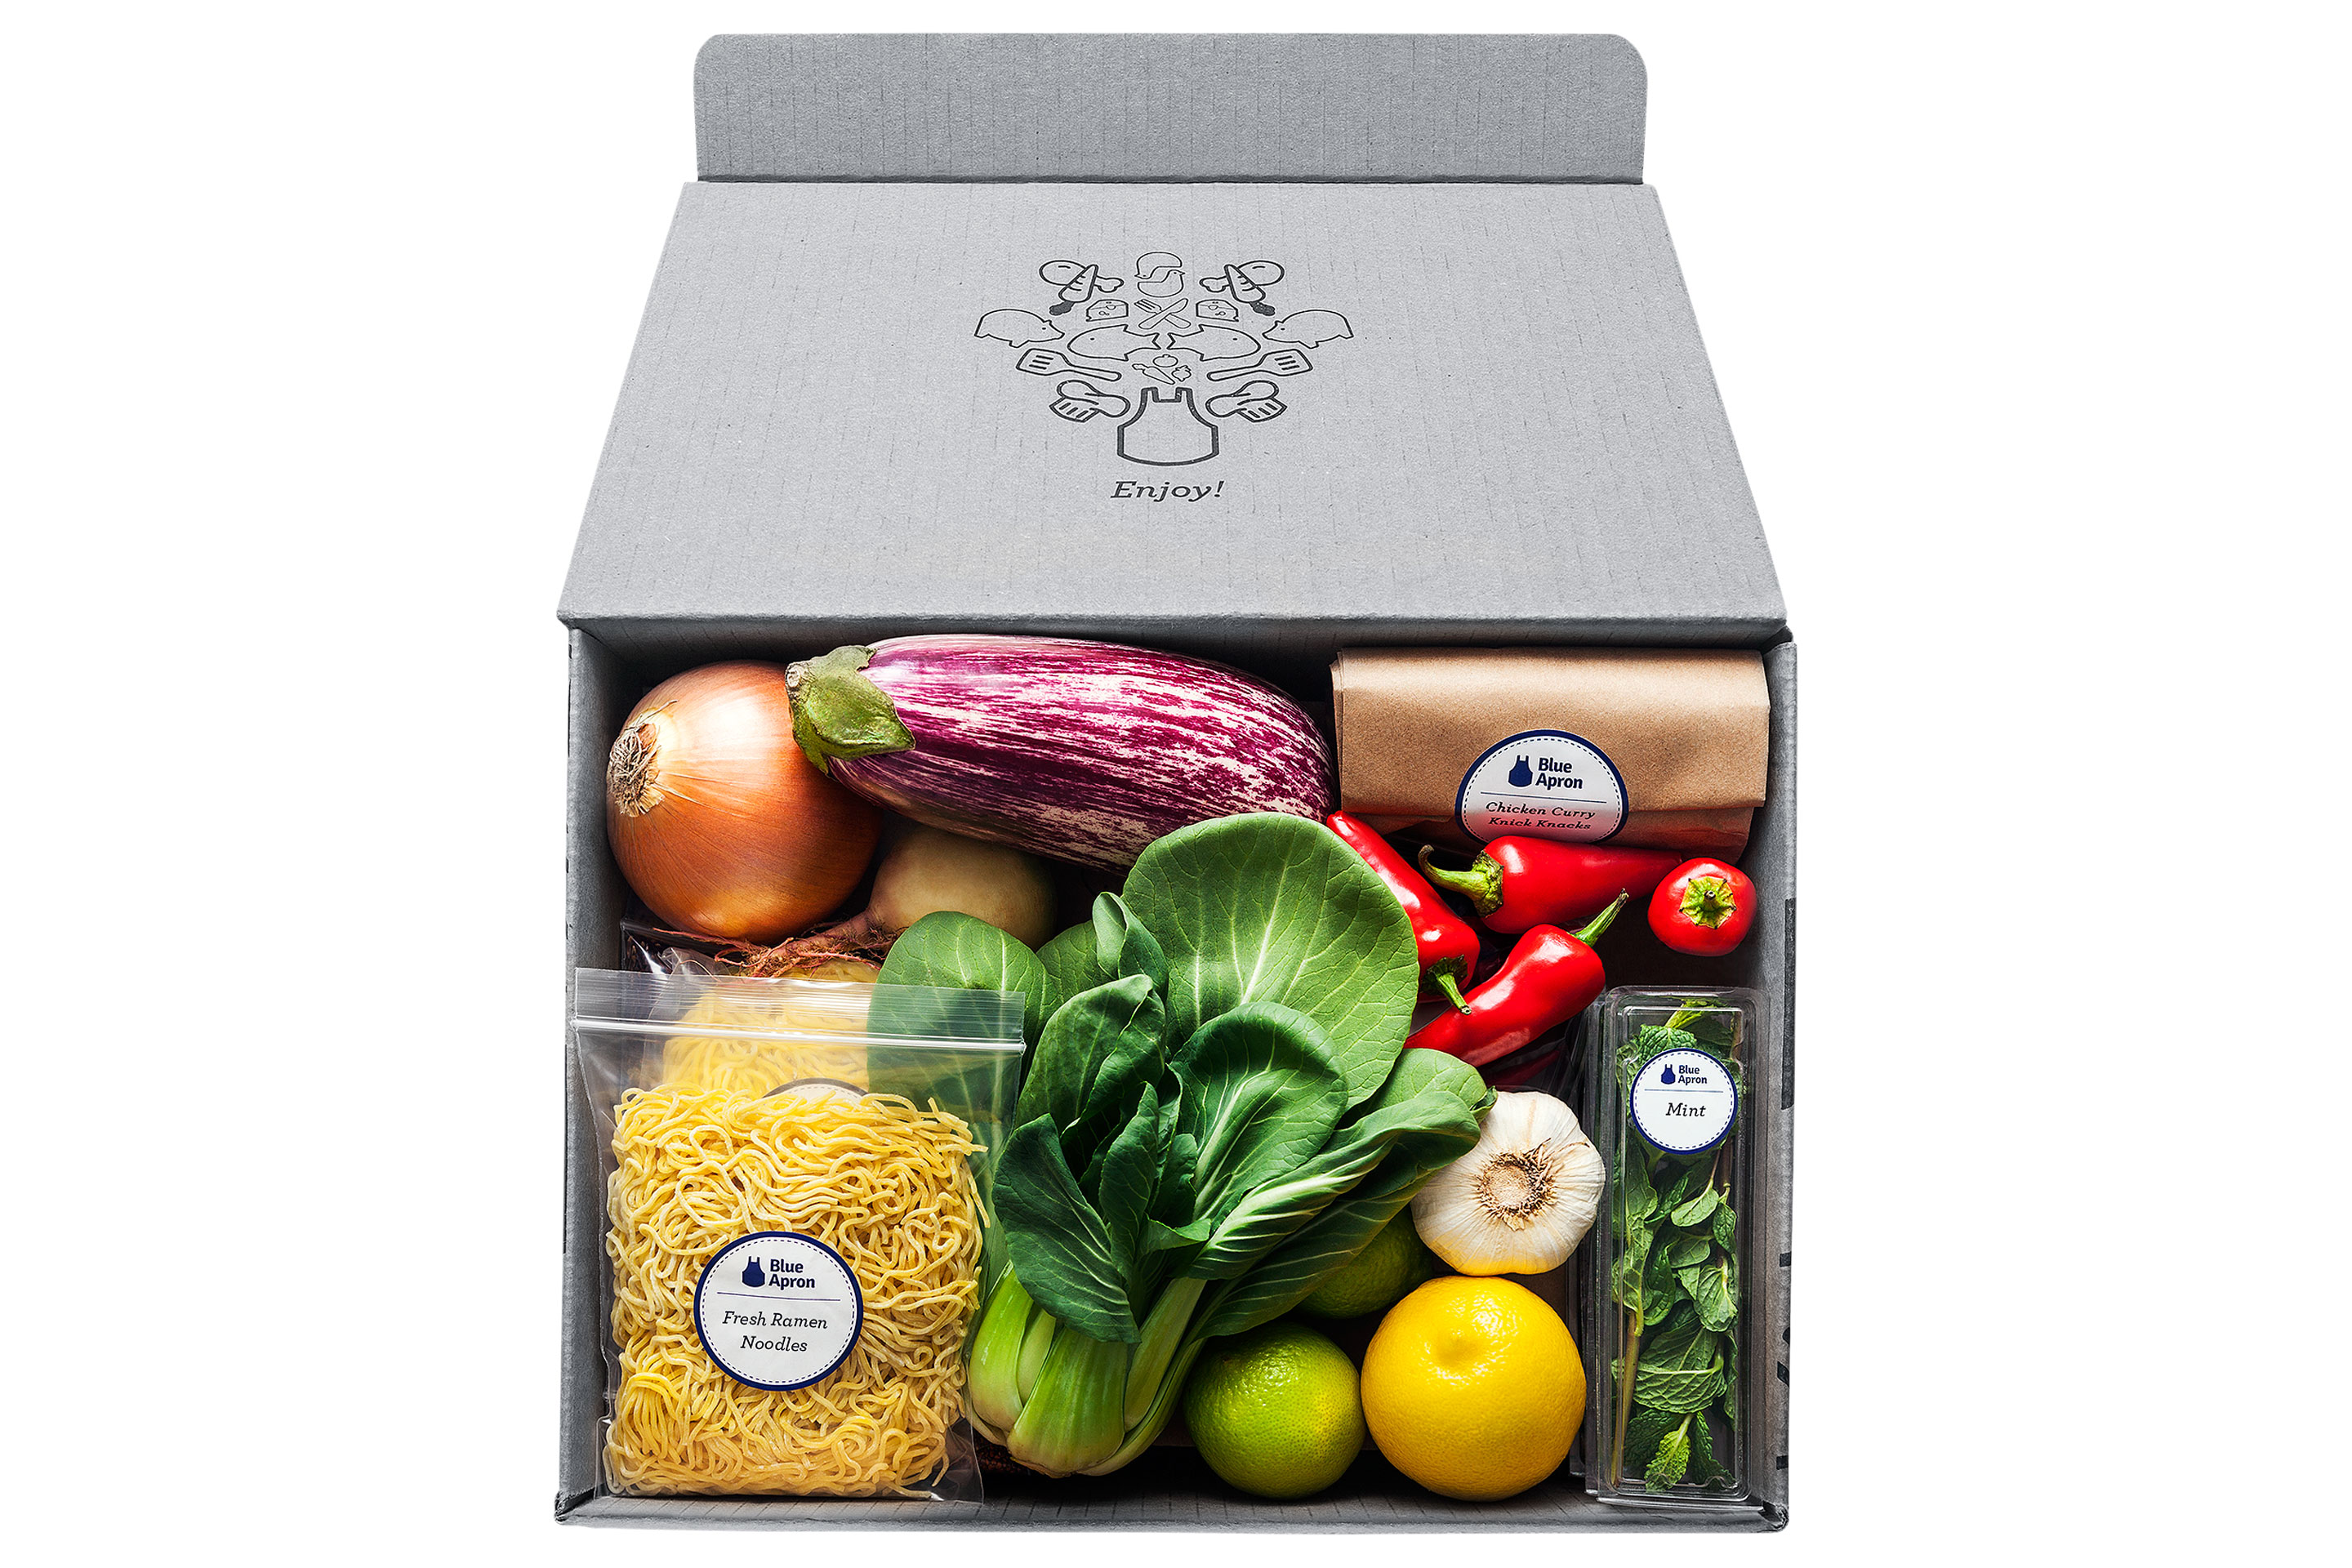 Blue Apron, king of meal-kit companies, faltered after its IPO this summer.